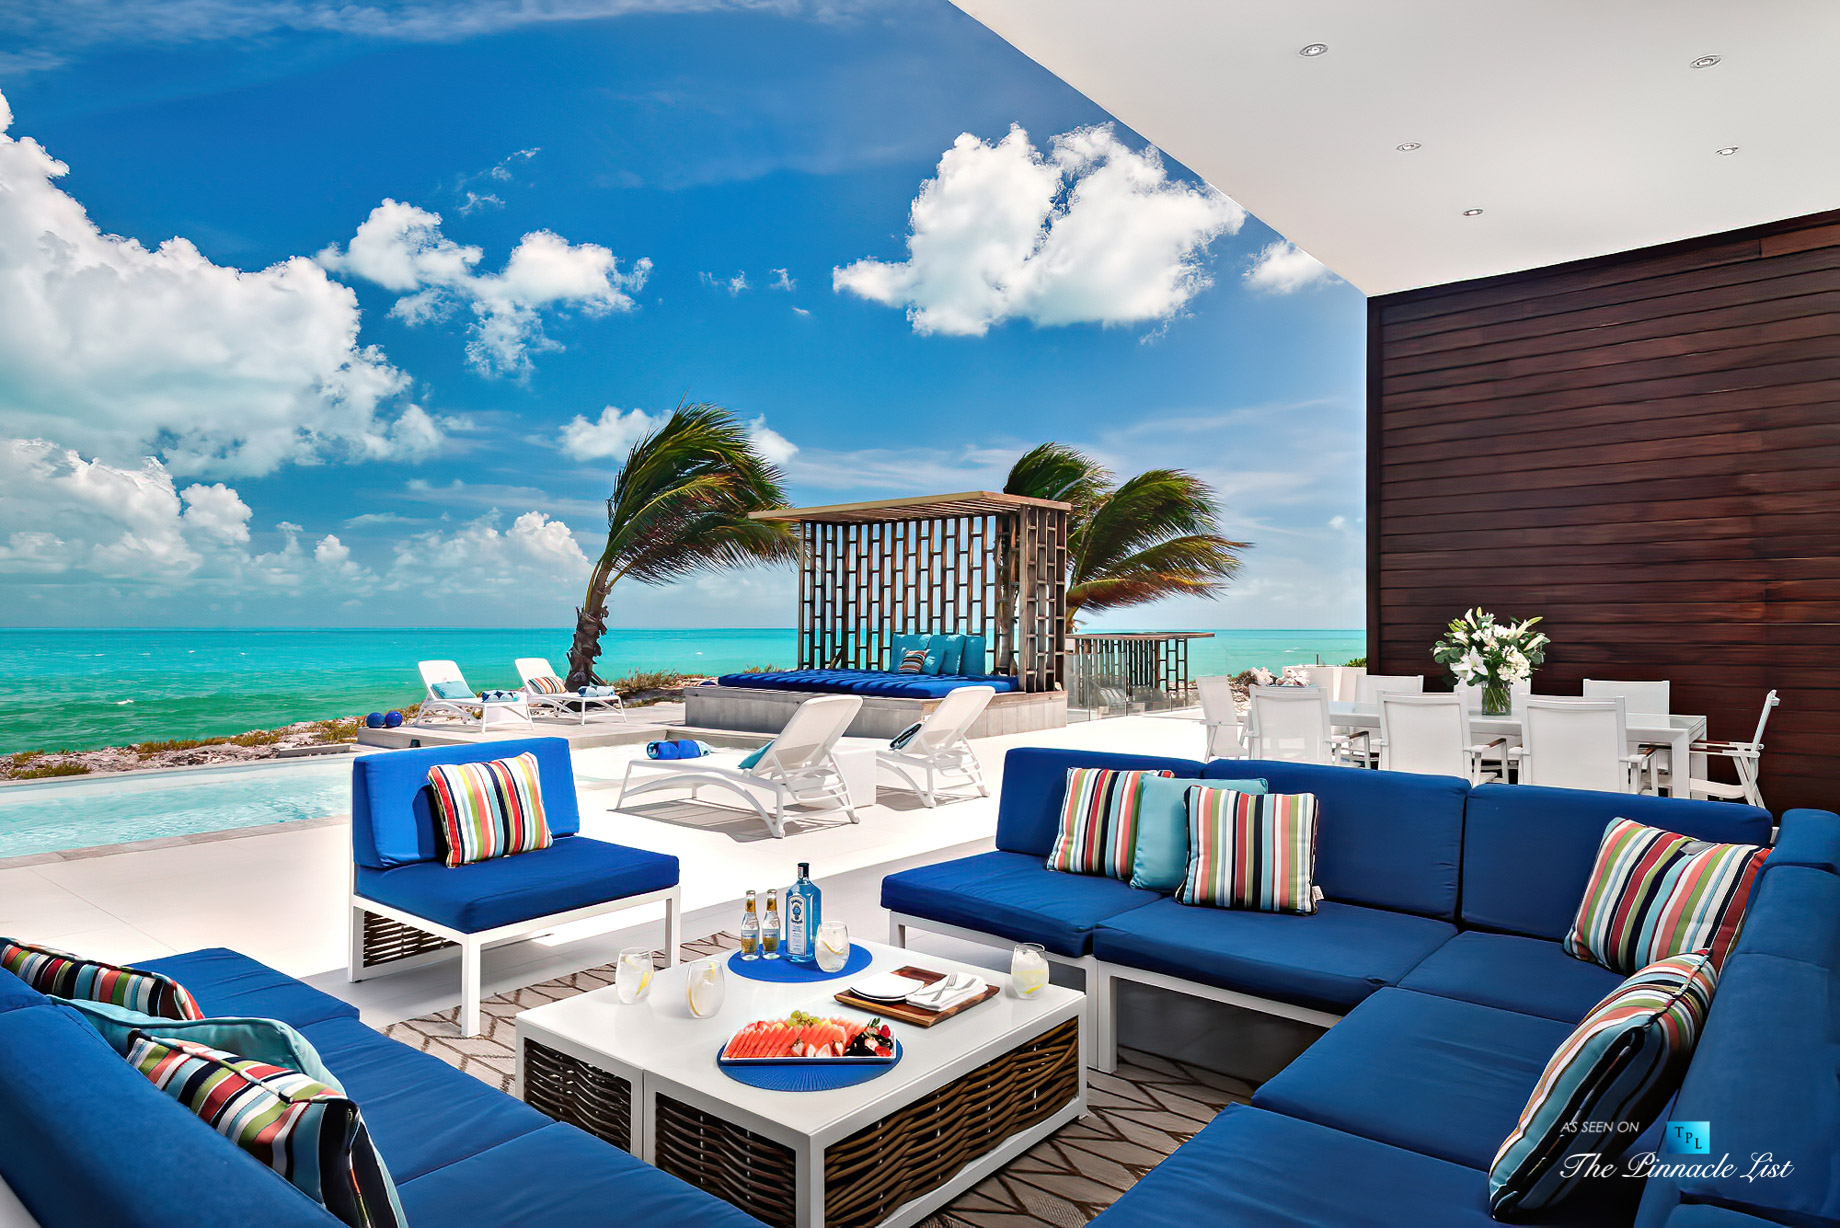 Tip of the Tail Luxury Villa – Providenciales, Turks and Caicos Islands – Infinity Pool Deck